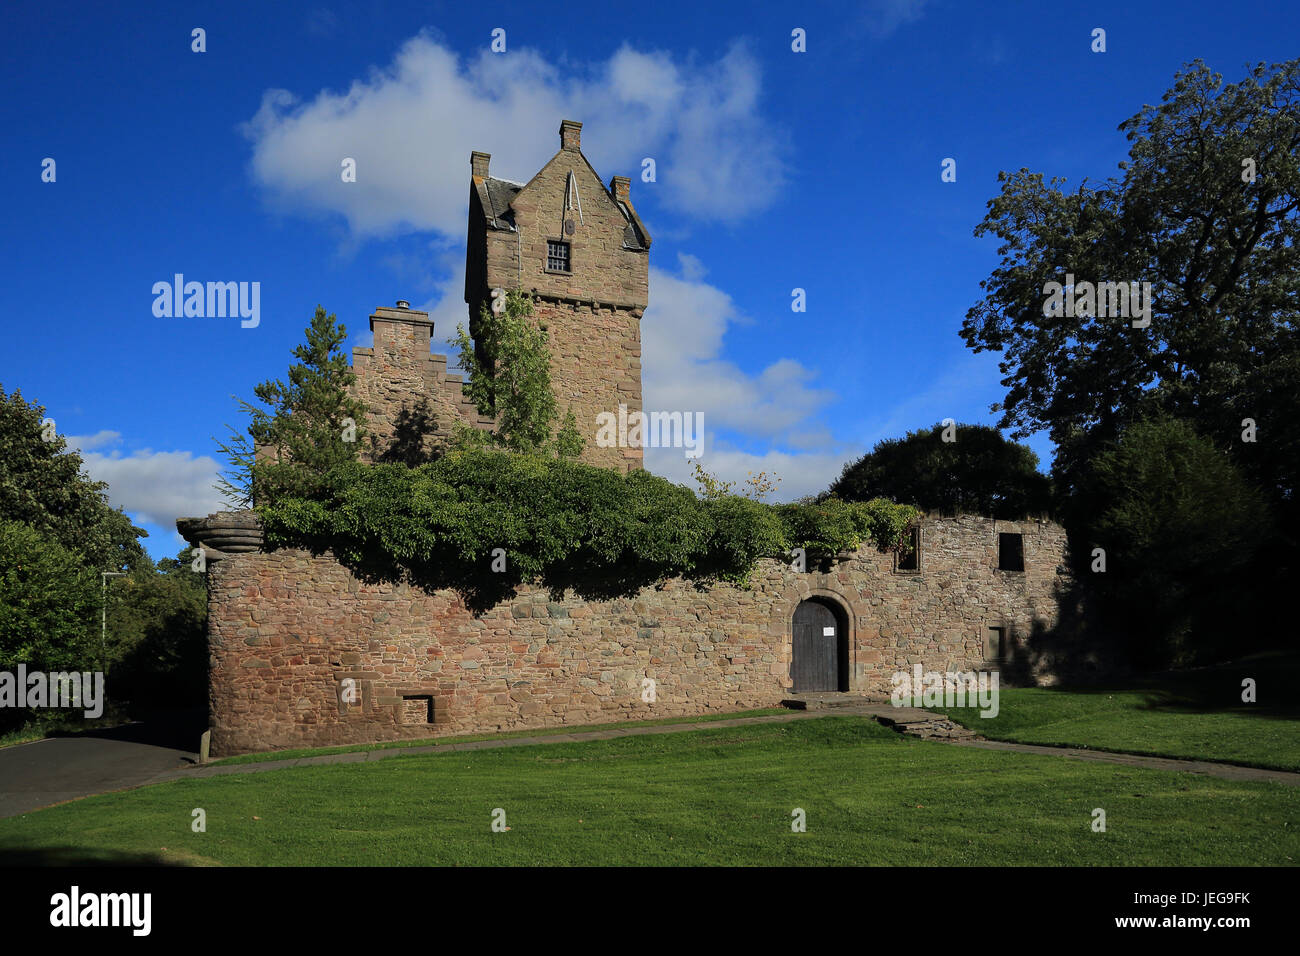 Mains Castle, also known as Claverhouse Castle or Fintry Castle in Dundee, Scotland - Stock Image